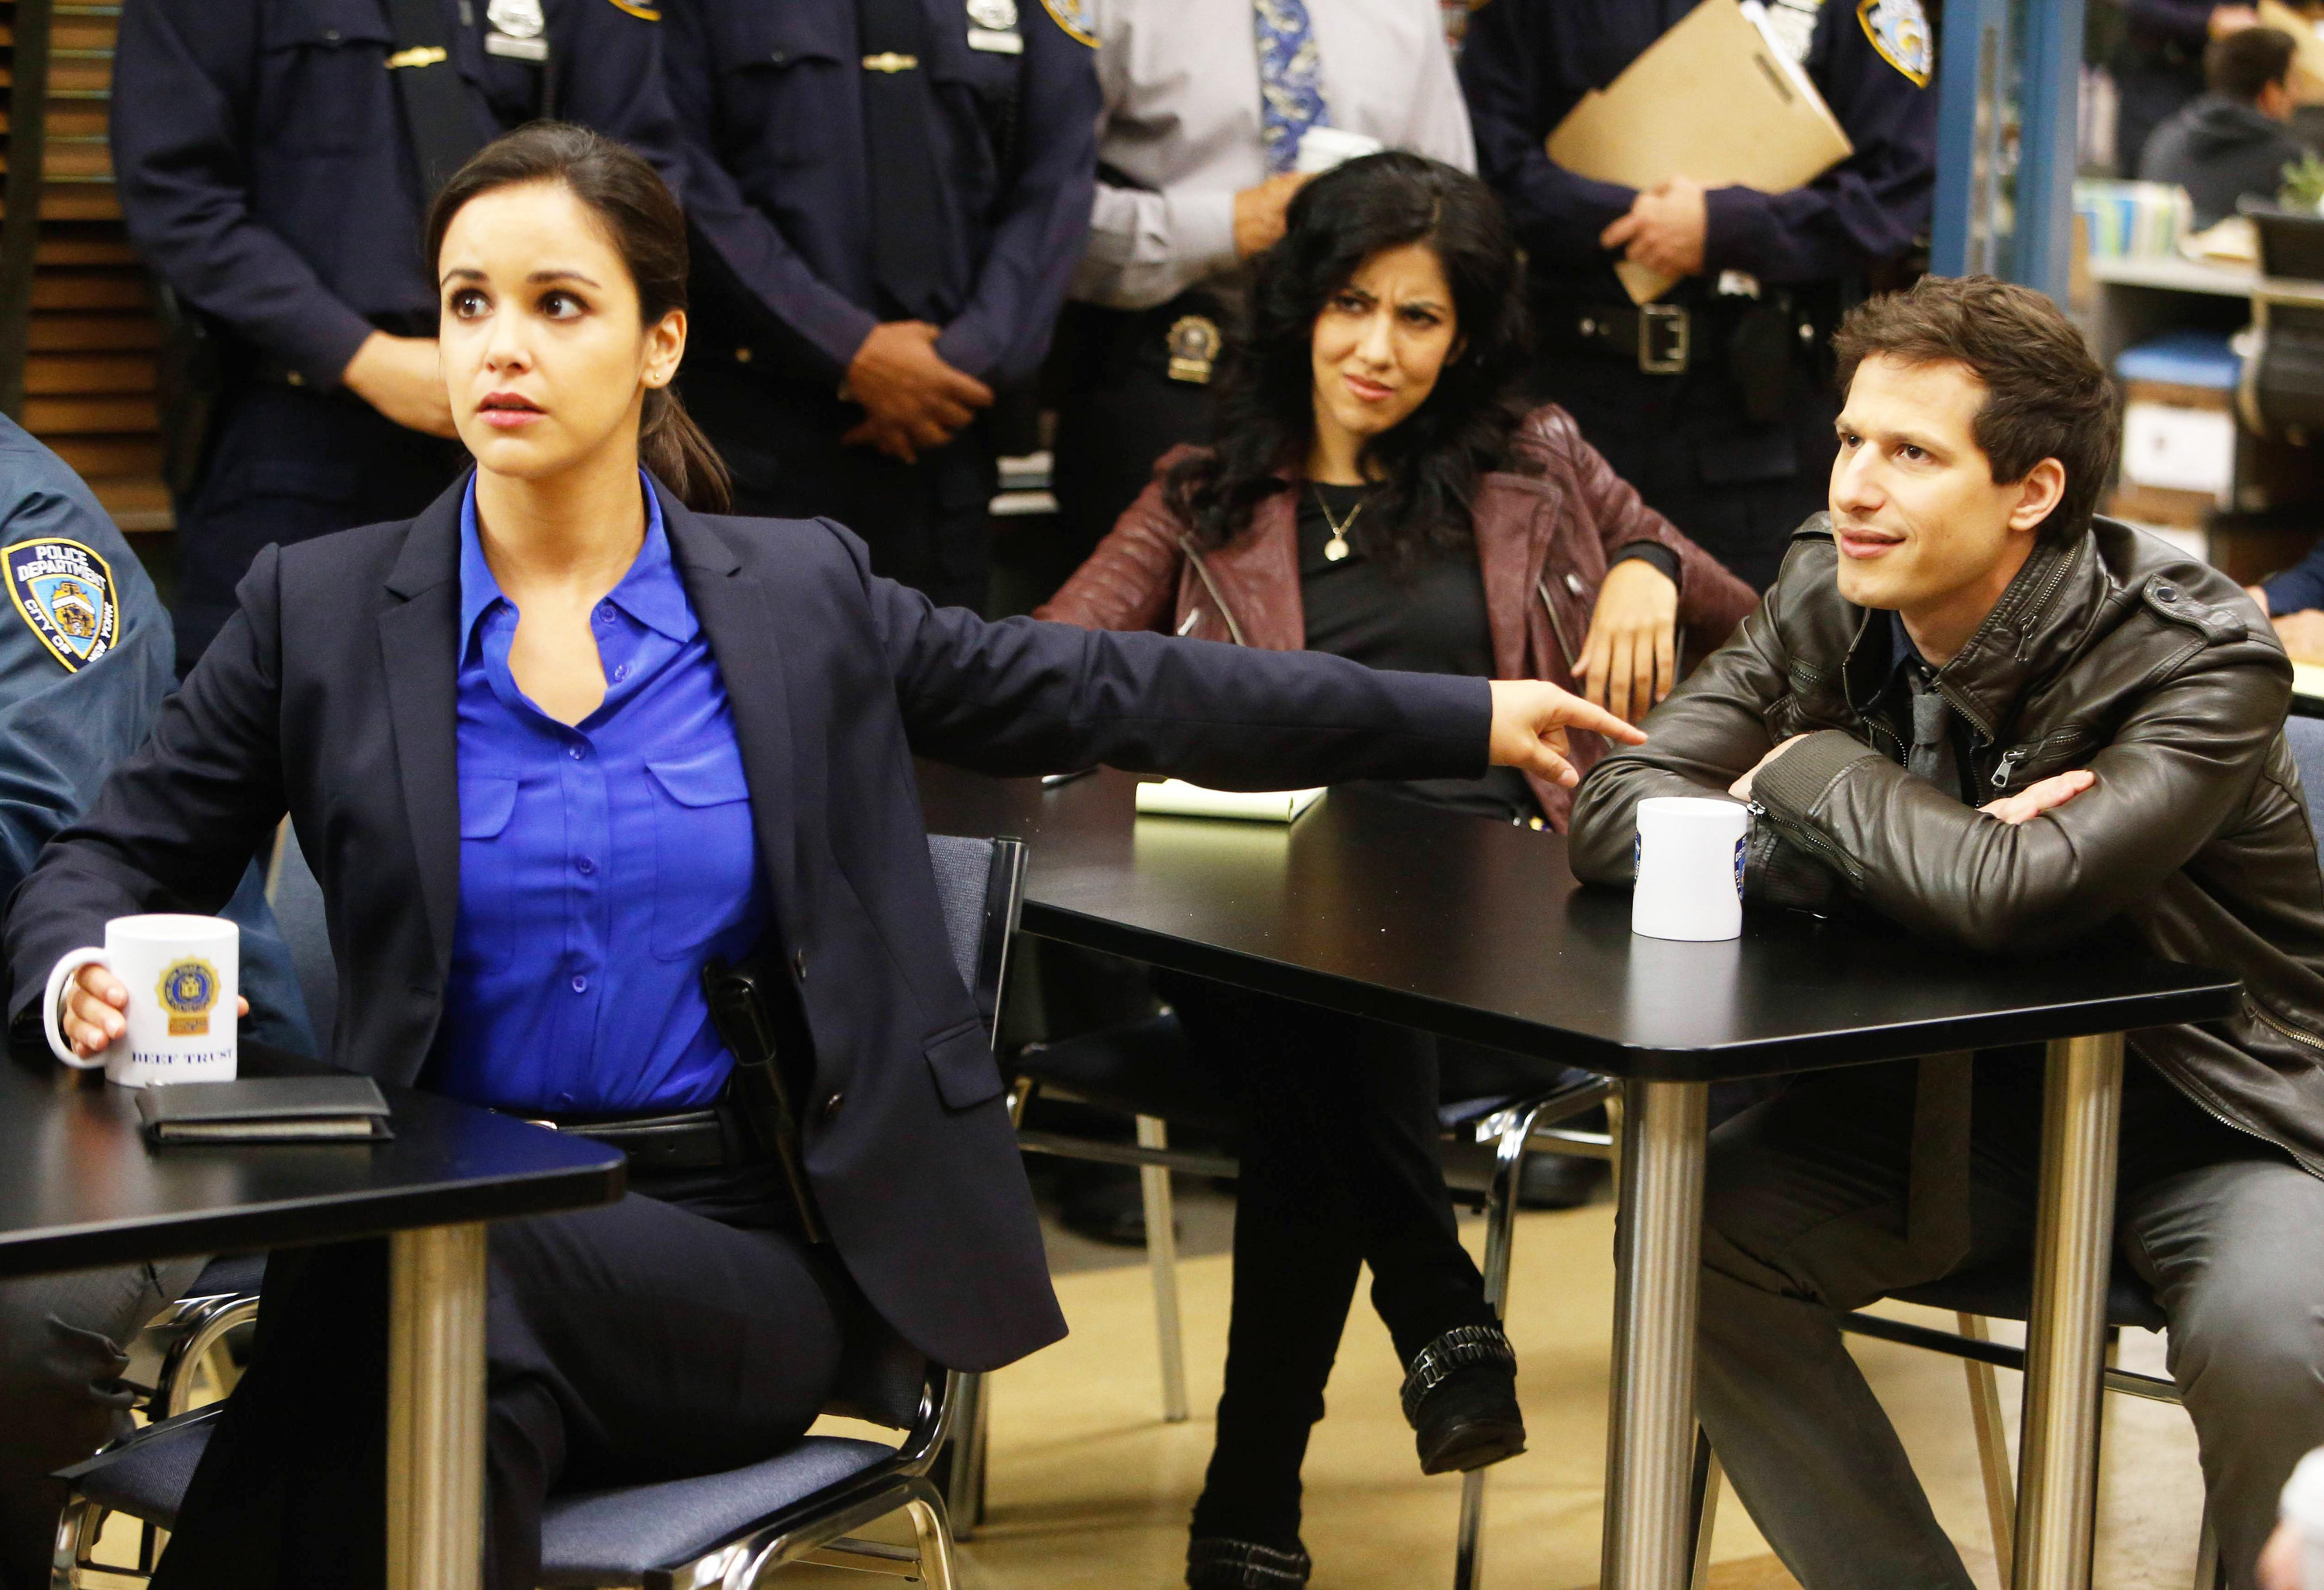 Amy Santiago, looking frightened, points at Jake